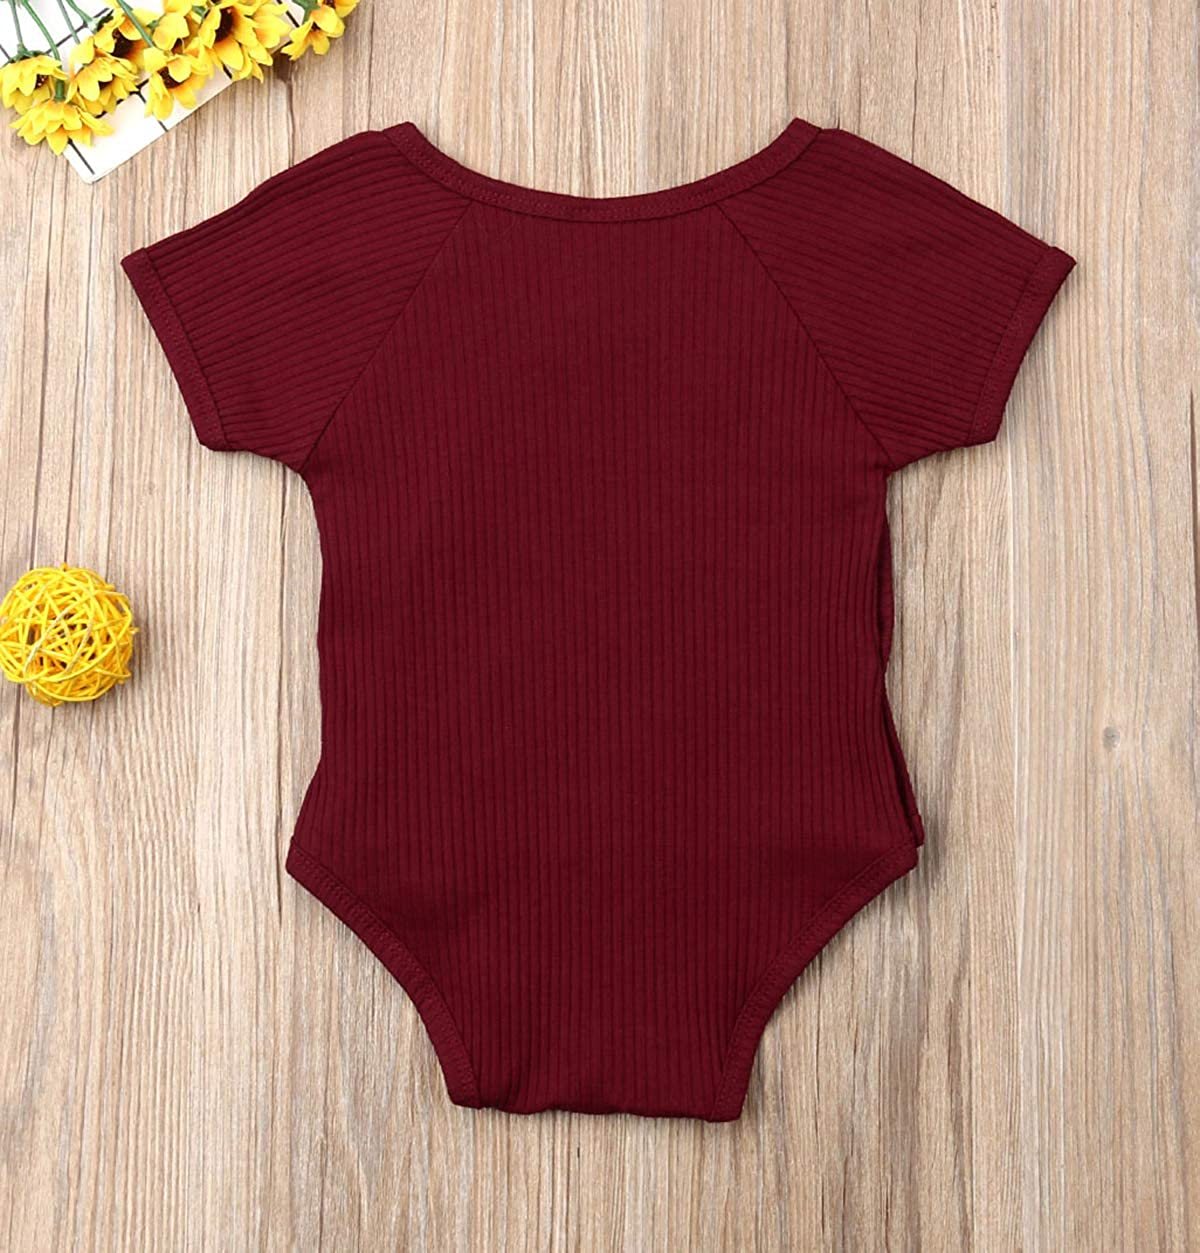 doublebabyjoy Newborn Baby Side-Snap Summer Cotton Romper Kimono Toddler Girl Boy Solid Color Short Sleeve Bodysuit Outfits